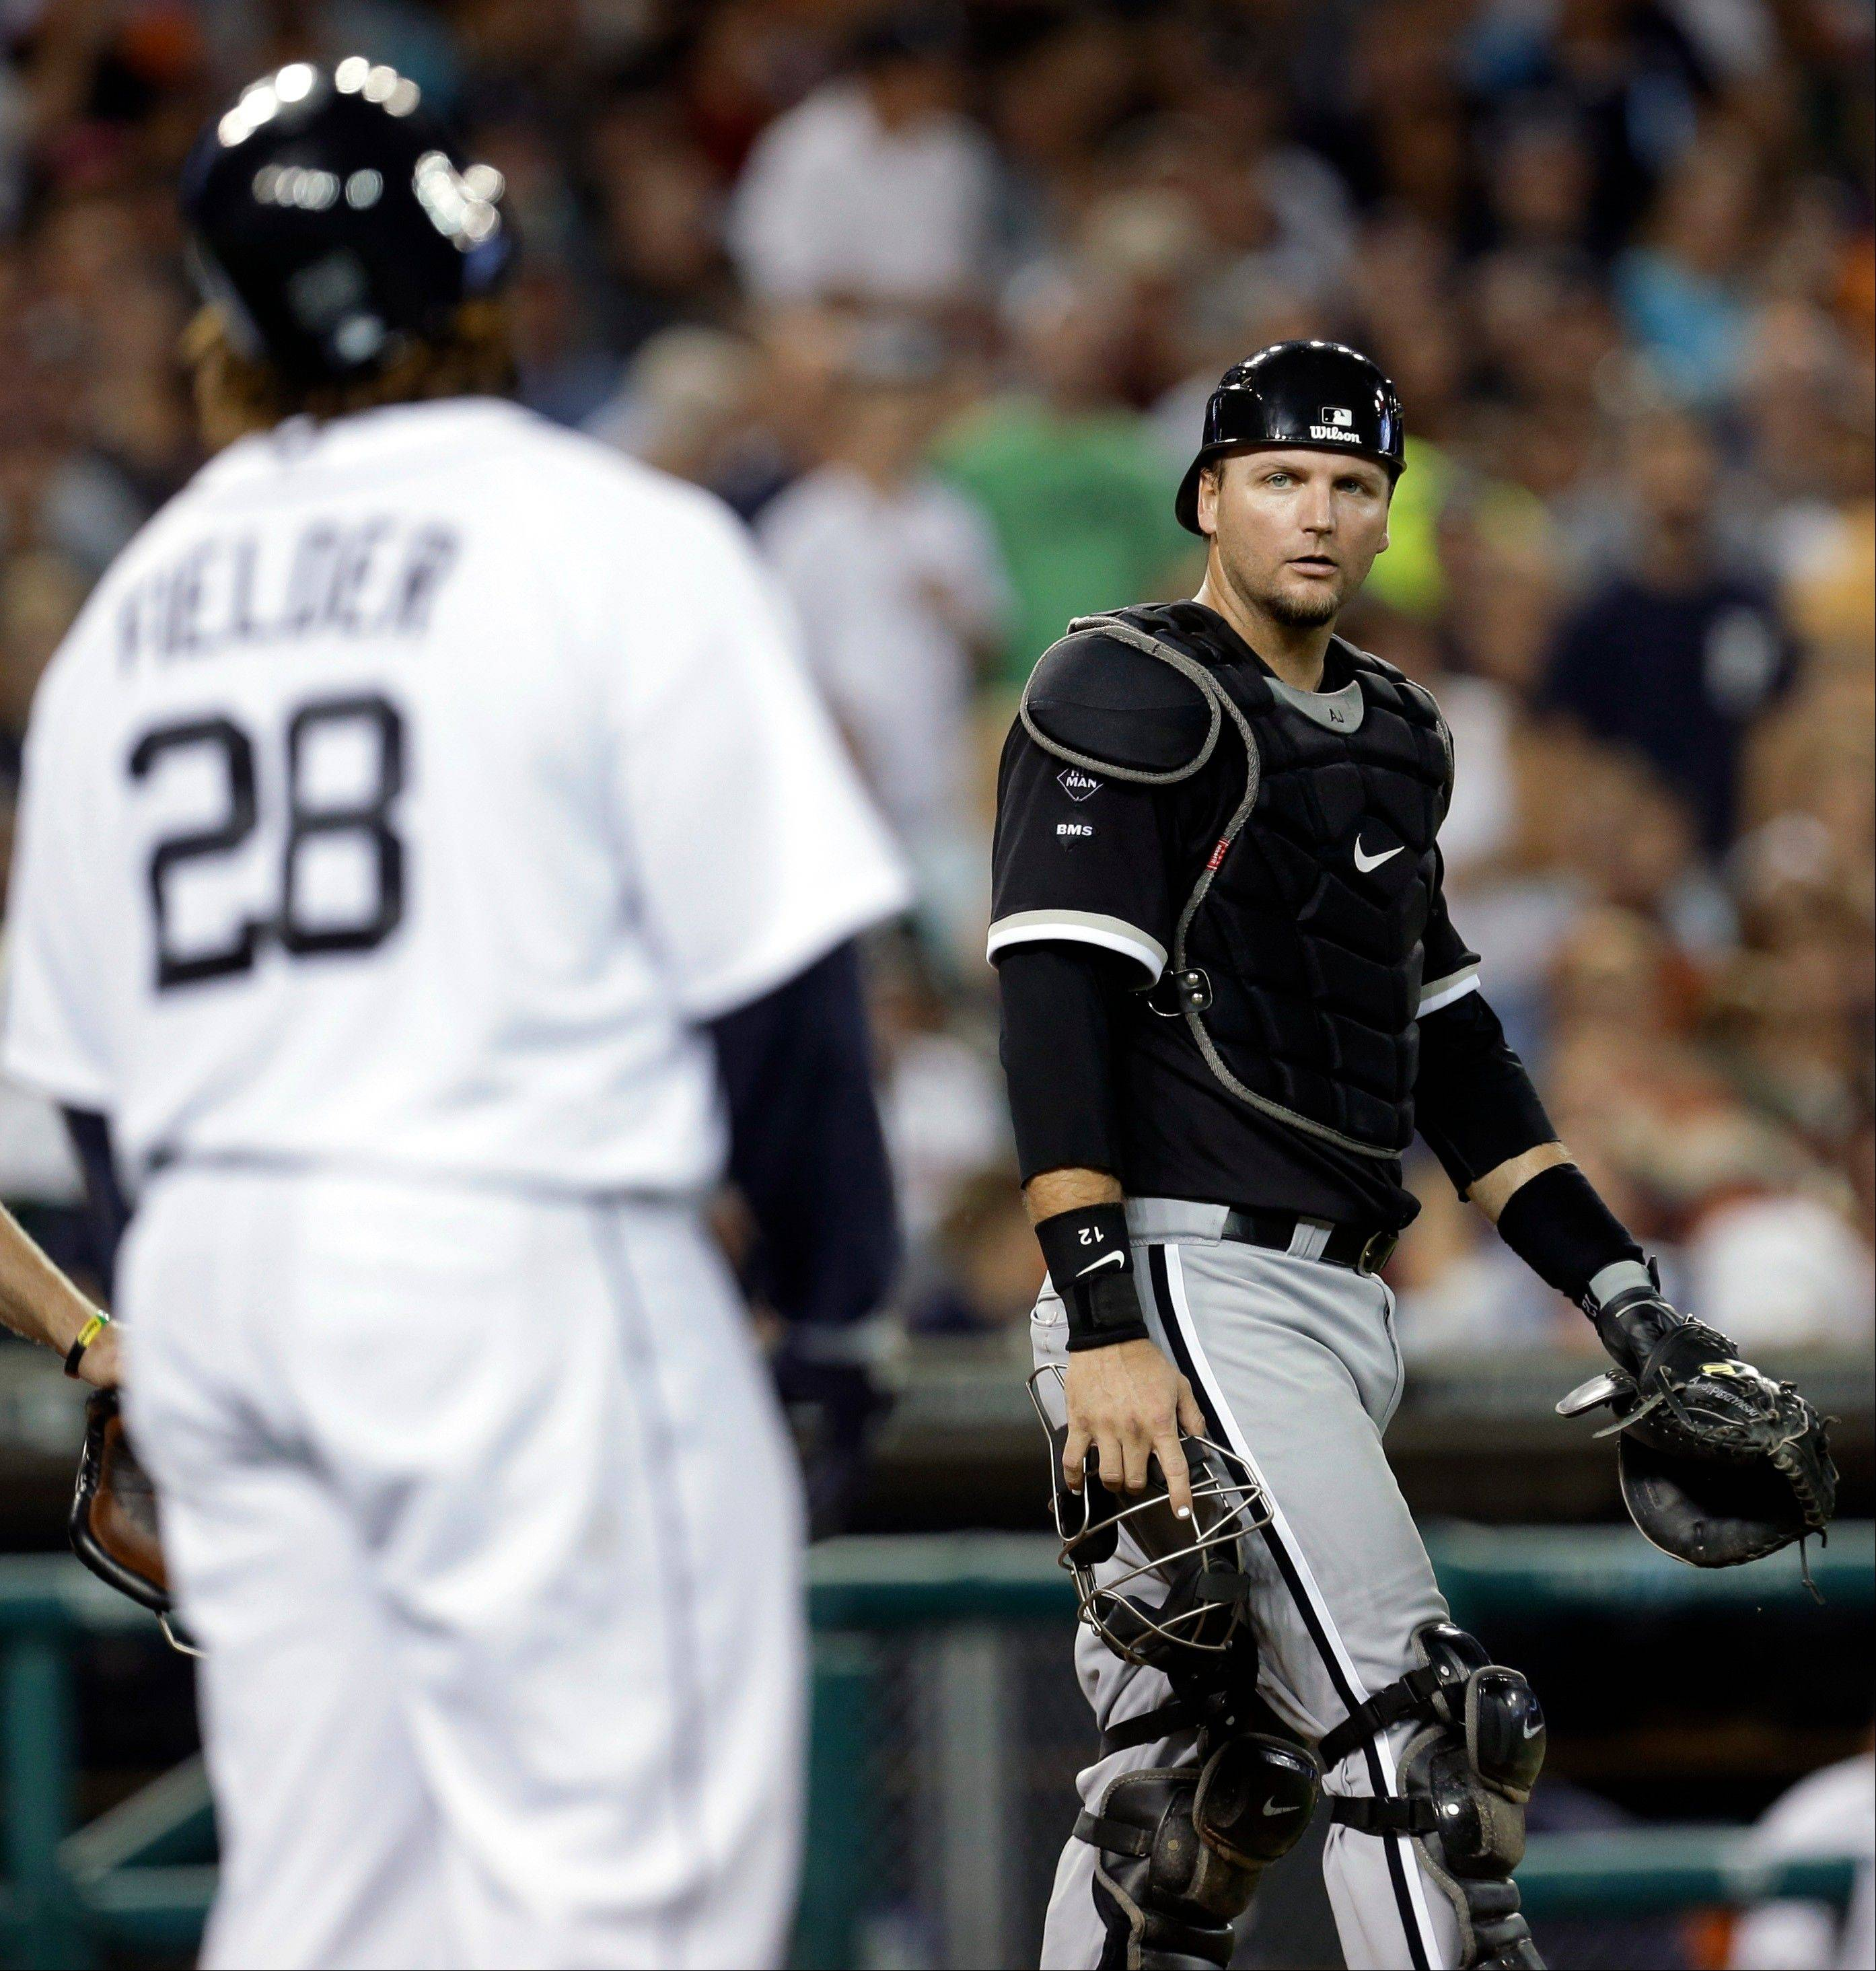 Detroit Tigers' Prince Fielder (28) talks with Chicago White Sox catcher A.J. Pierzynski, left, after being hit by a pitch from Matt Thornton in the seventh inning of a baseball game in Detroit, Friday, Aug. 31, 2012.